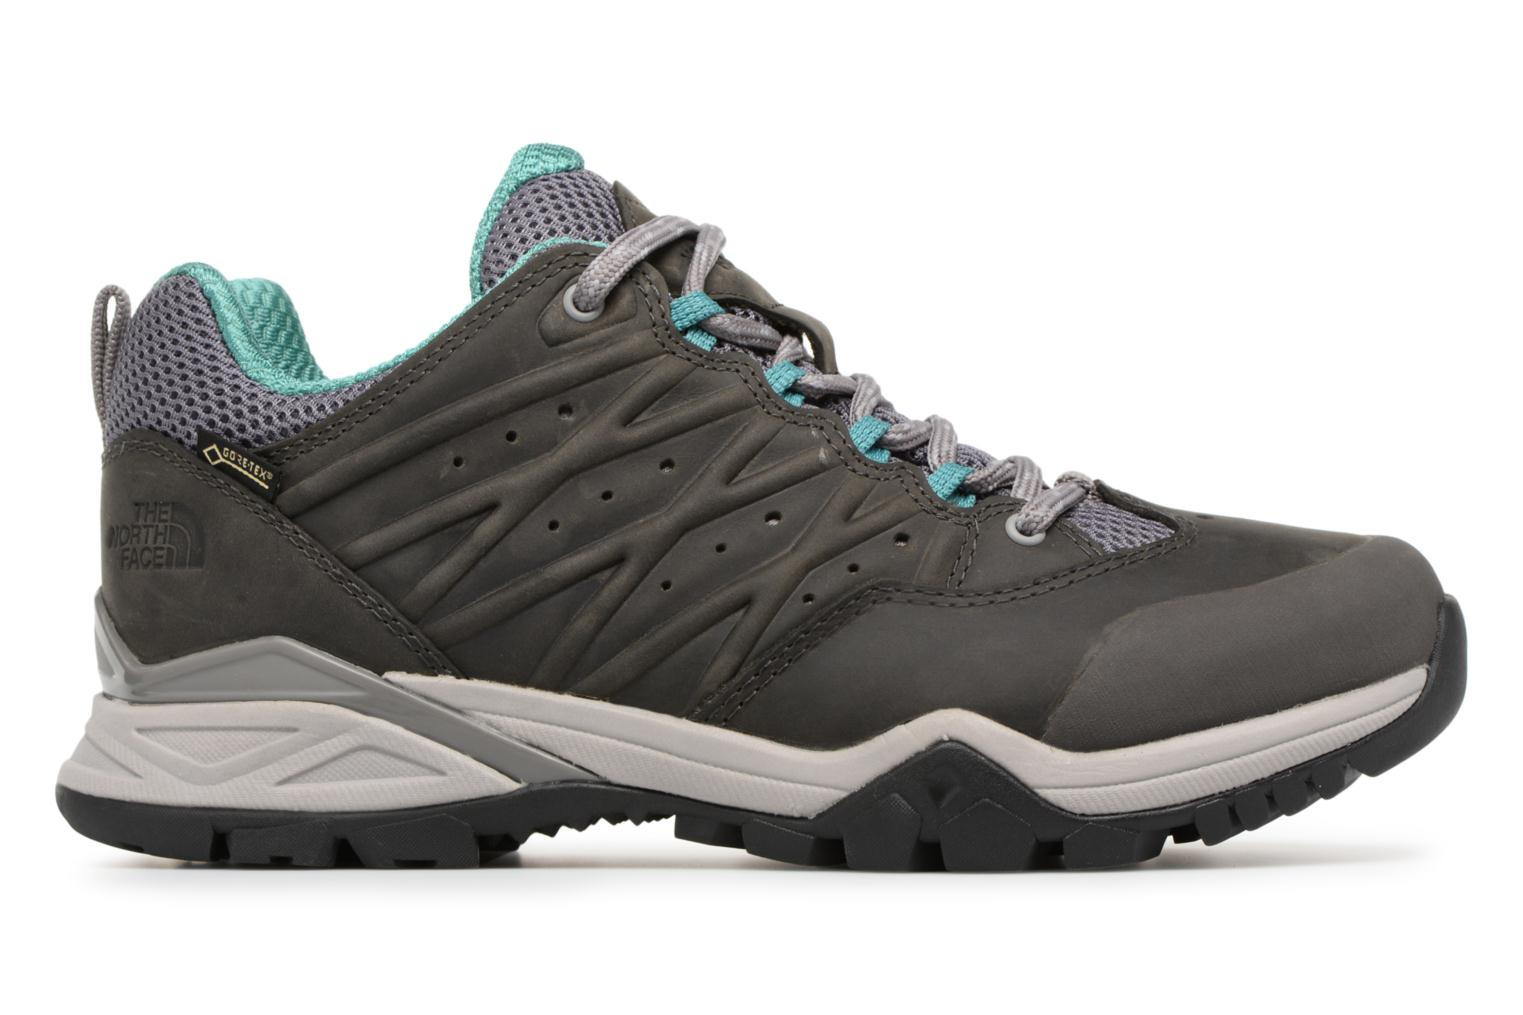 Chaussures de sport The North Face Hedgehog Hike II GTX W Gris vue derrière